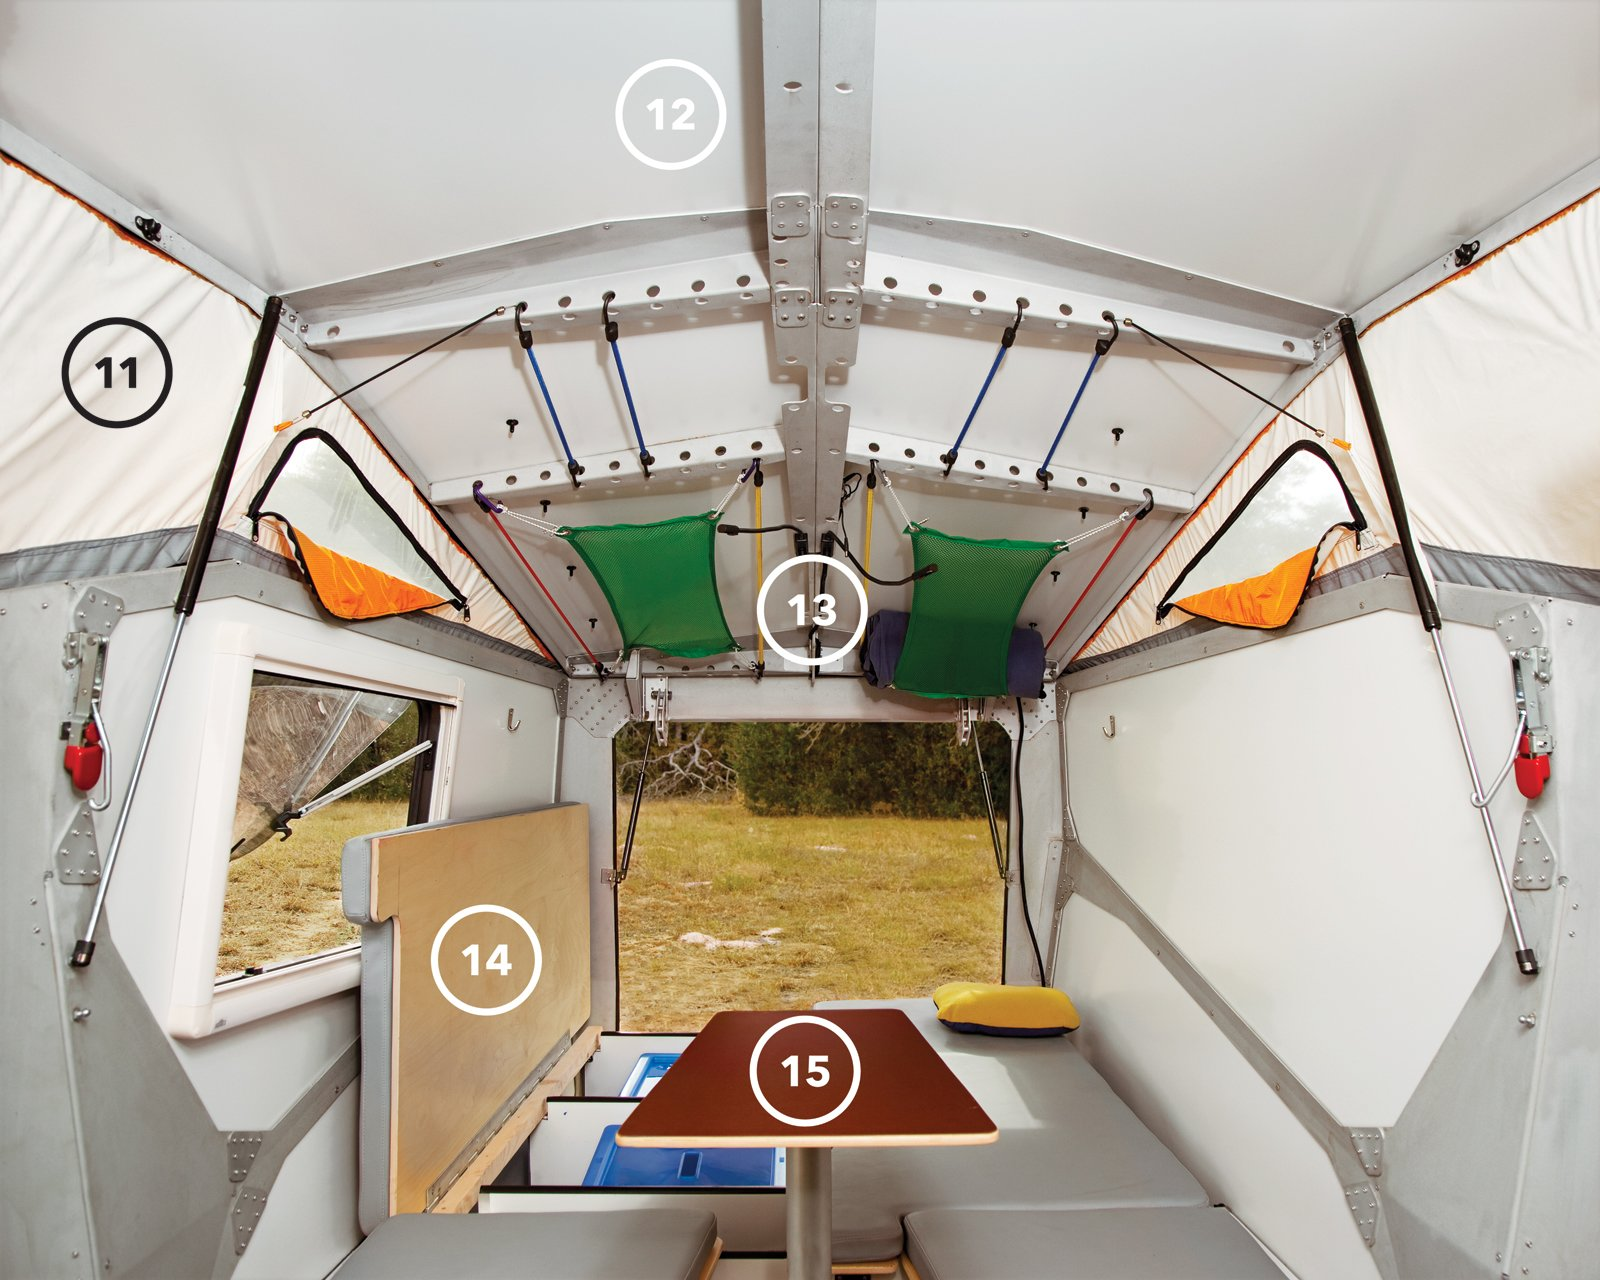 While the front, kitchen-end of the camper is all action, the back half is about rest and relaxation. The benches hide storage space beneath and, at night, become the sleeping area (14). The multiheight table (15) serves as an eating spot when in its highest position and as extra sleeping space when lowered and covered with a cushion. The table and its post can also be completly removed for additional legroom. The mesh-lined windows in the tent enclosure (11) bring in light and encourage ventilation. The LED reading lights (13) can be set to white or red (the latter keeps your eyes from dilating so you can run outside at a moment's notice and catch a glimpse of a shooting star without waiting for your eyes to adjust). The laser-cut aluminum frame (12) features circular openings that make hanging sleeping bags, pillows, blankets, and luggage as easy as stretching and hooking elastic cords into place.  Photo 3 of 15 in Modern NASA-Inspired Cricket Trailer